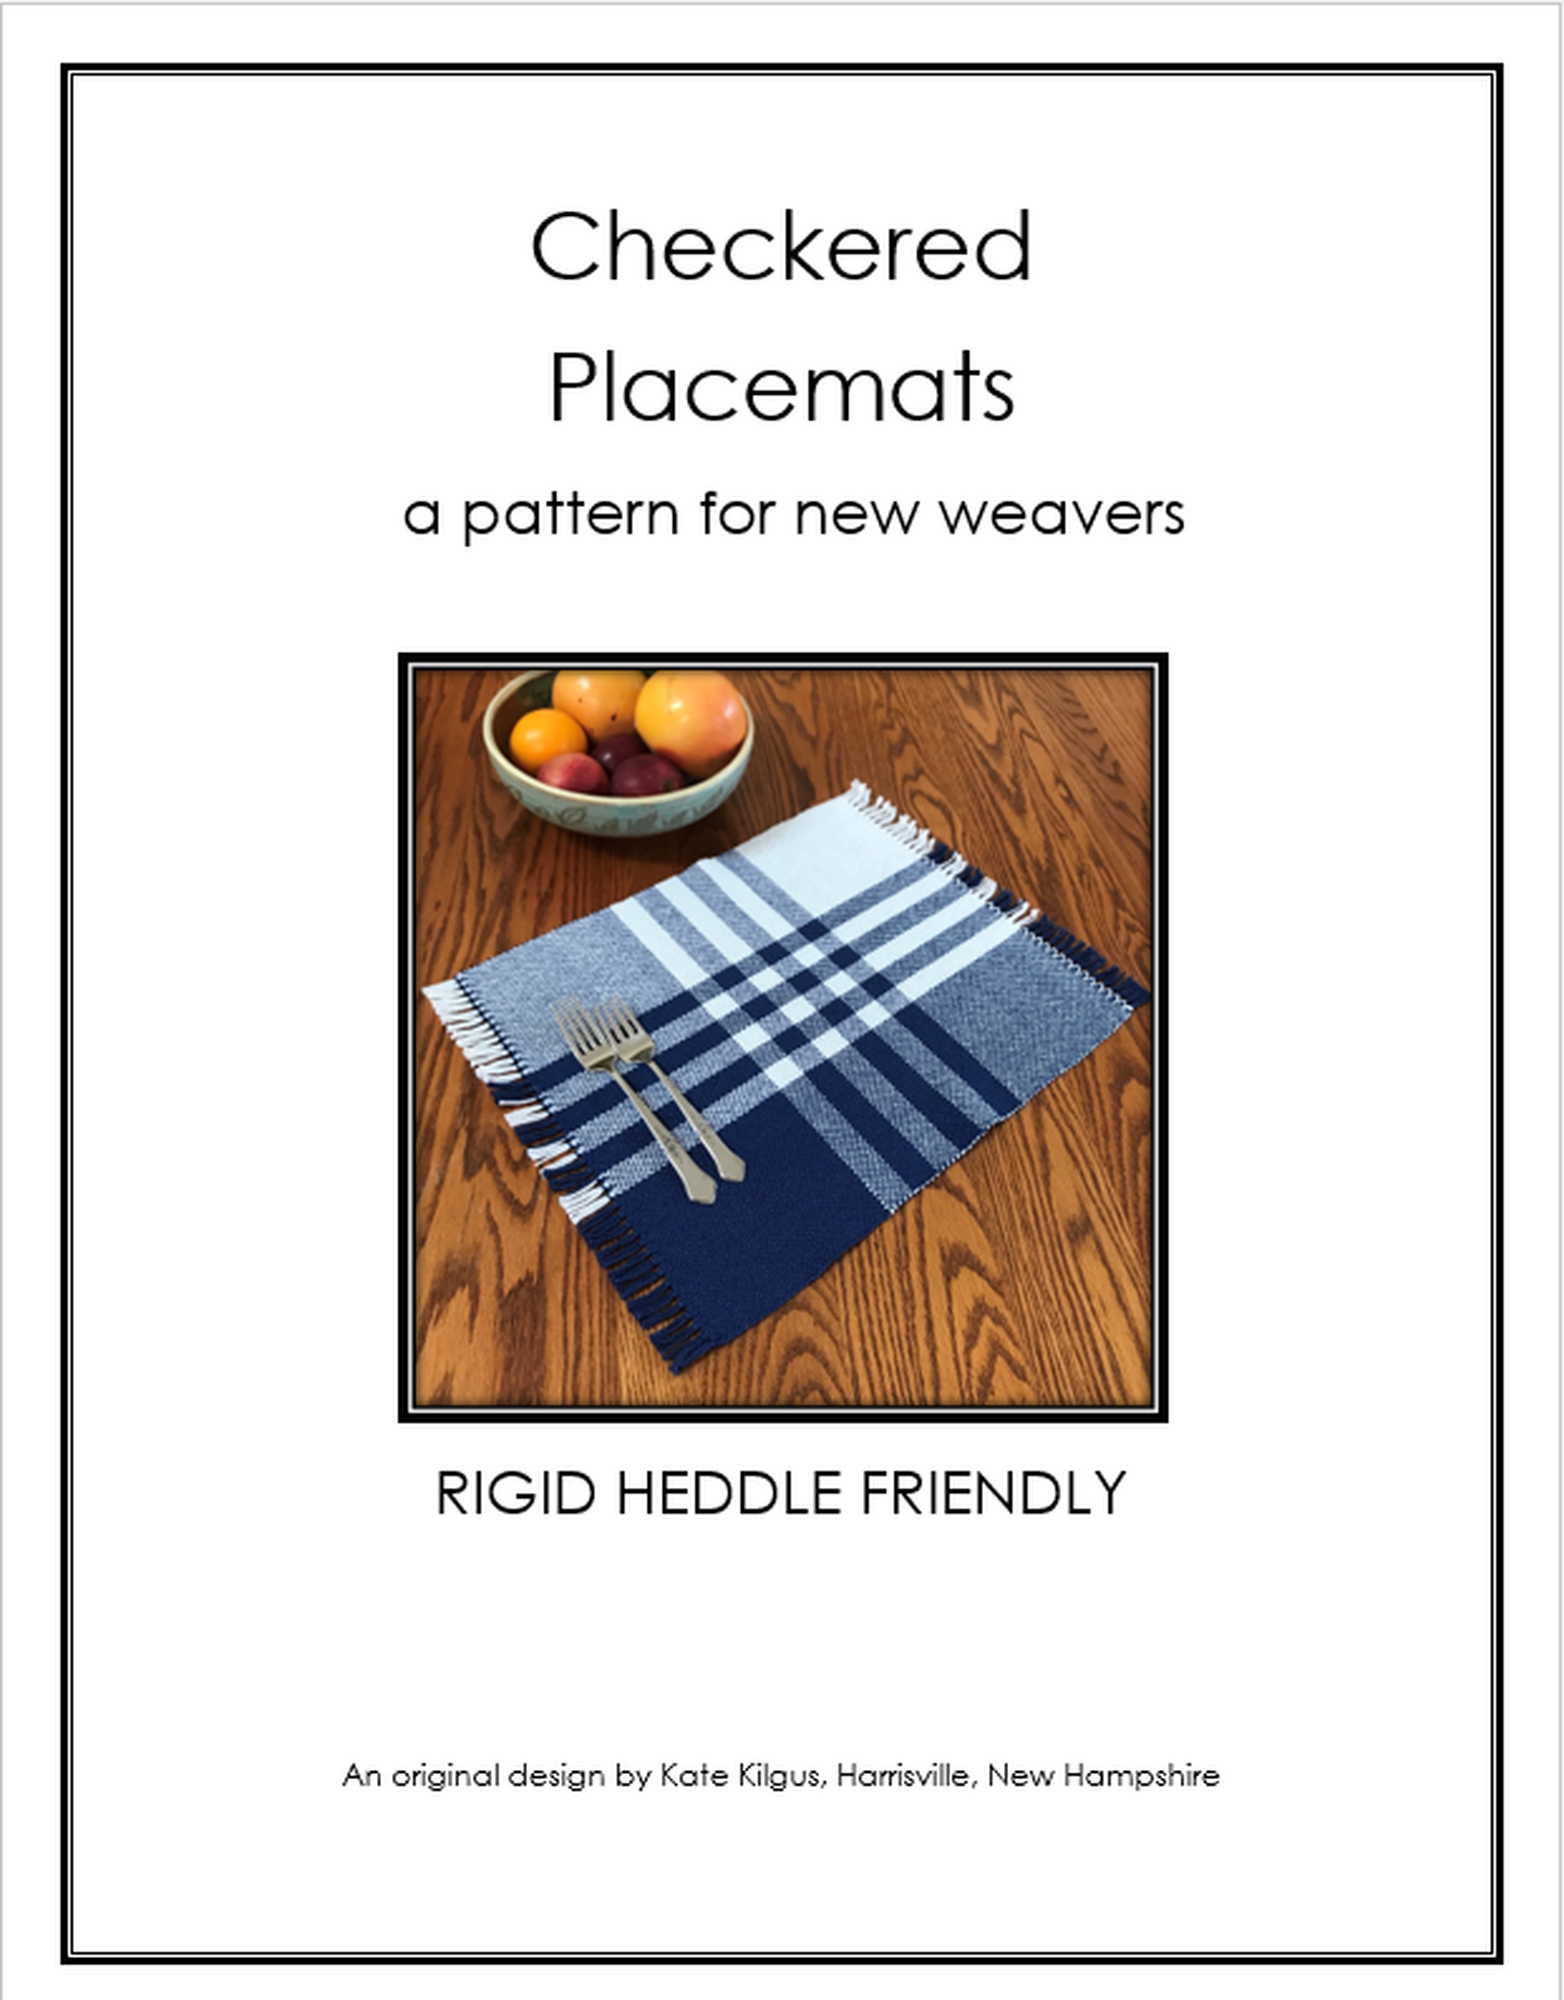 checkered-placemats-title-page-photo-for-website